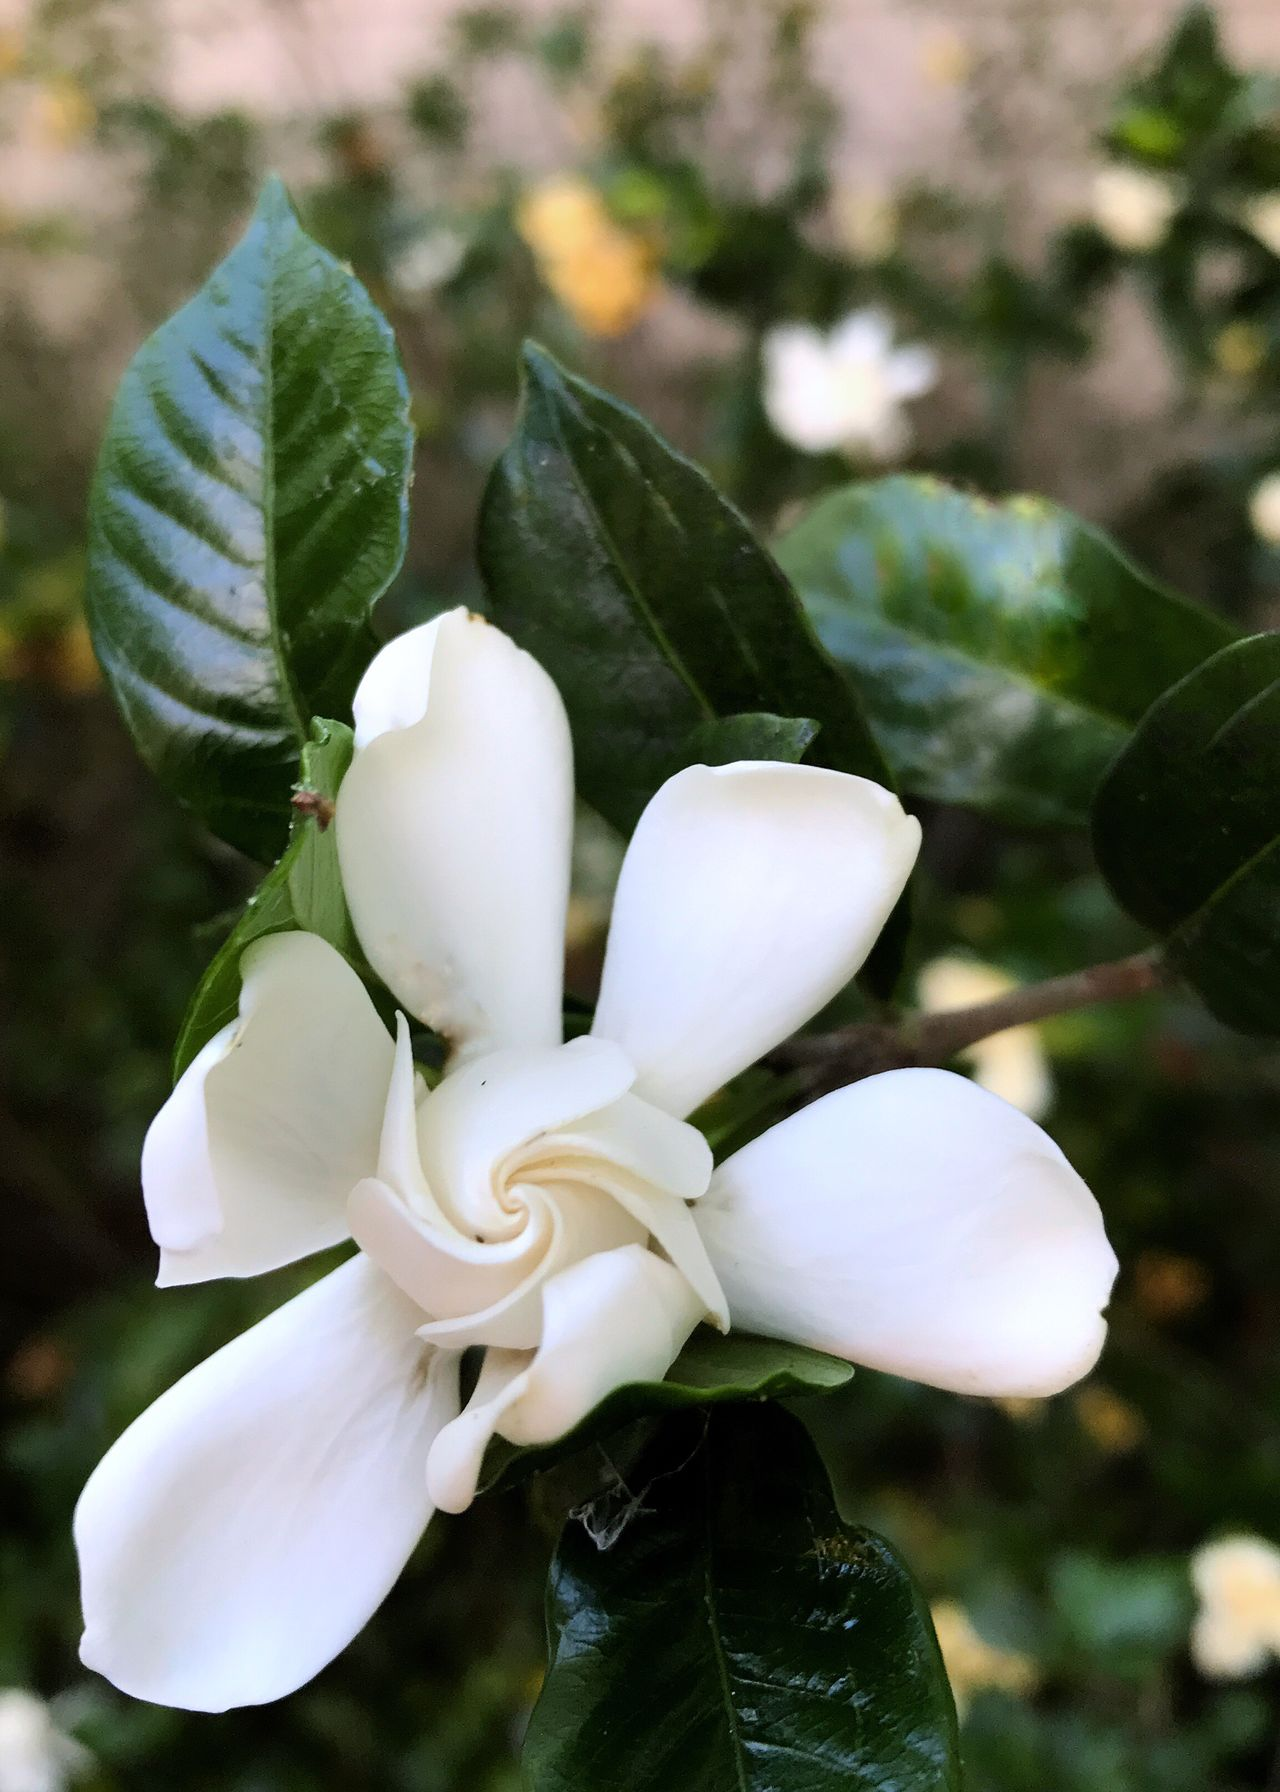 Gardenia blossom. Flower White Color White Flower Petal Swirl Flower Head Focus On Foreground Close-up Day Vertical No People Outdoors Blooming Gardenia